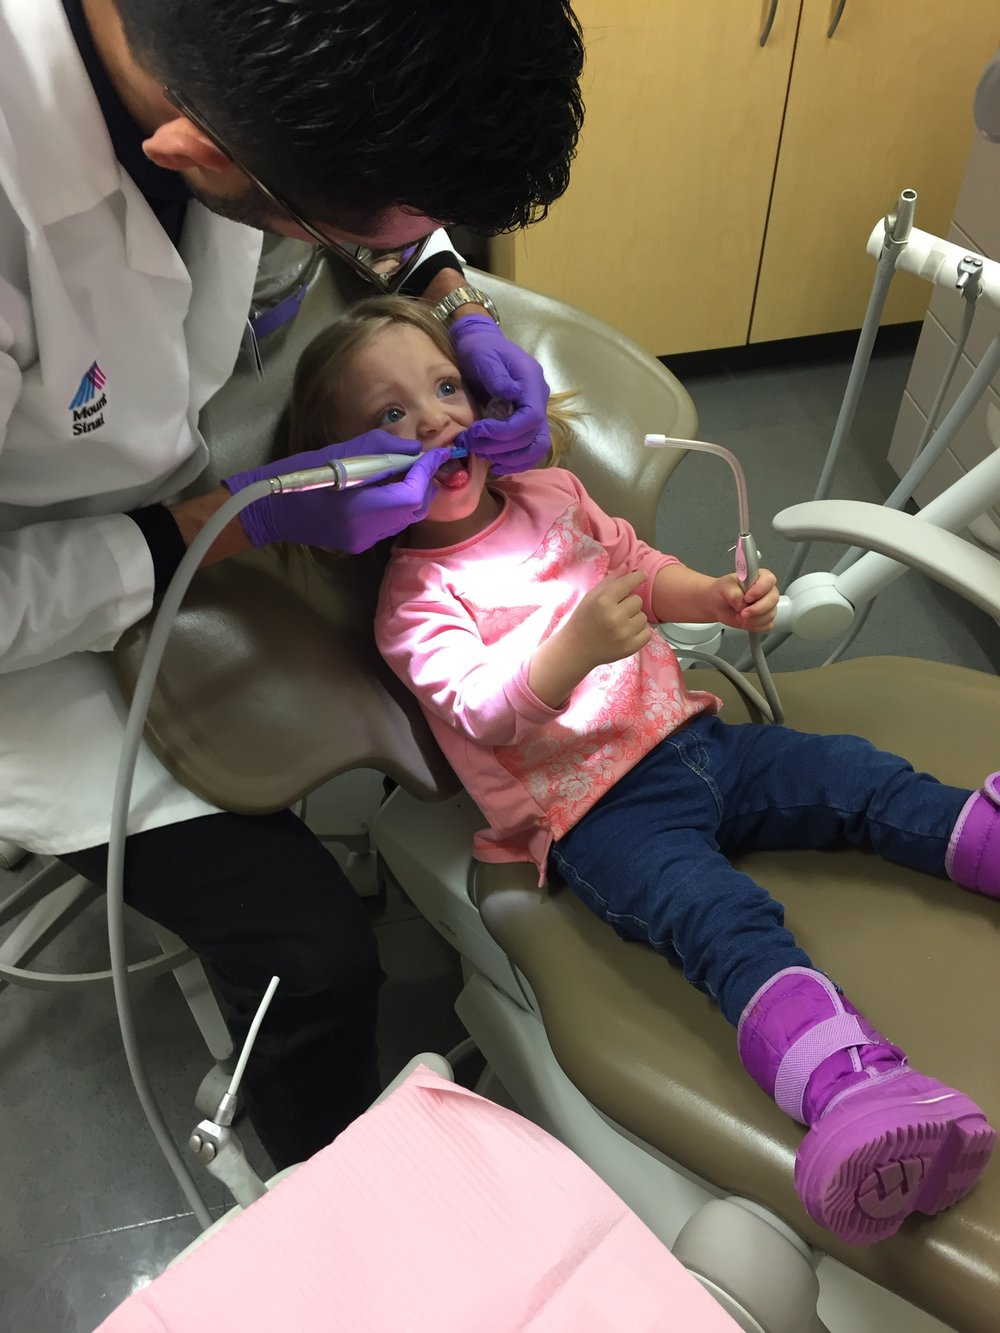 This dentist was amazing... and so was she!